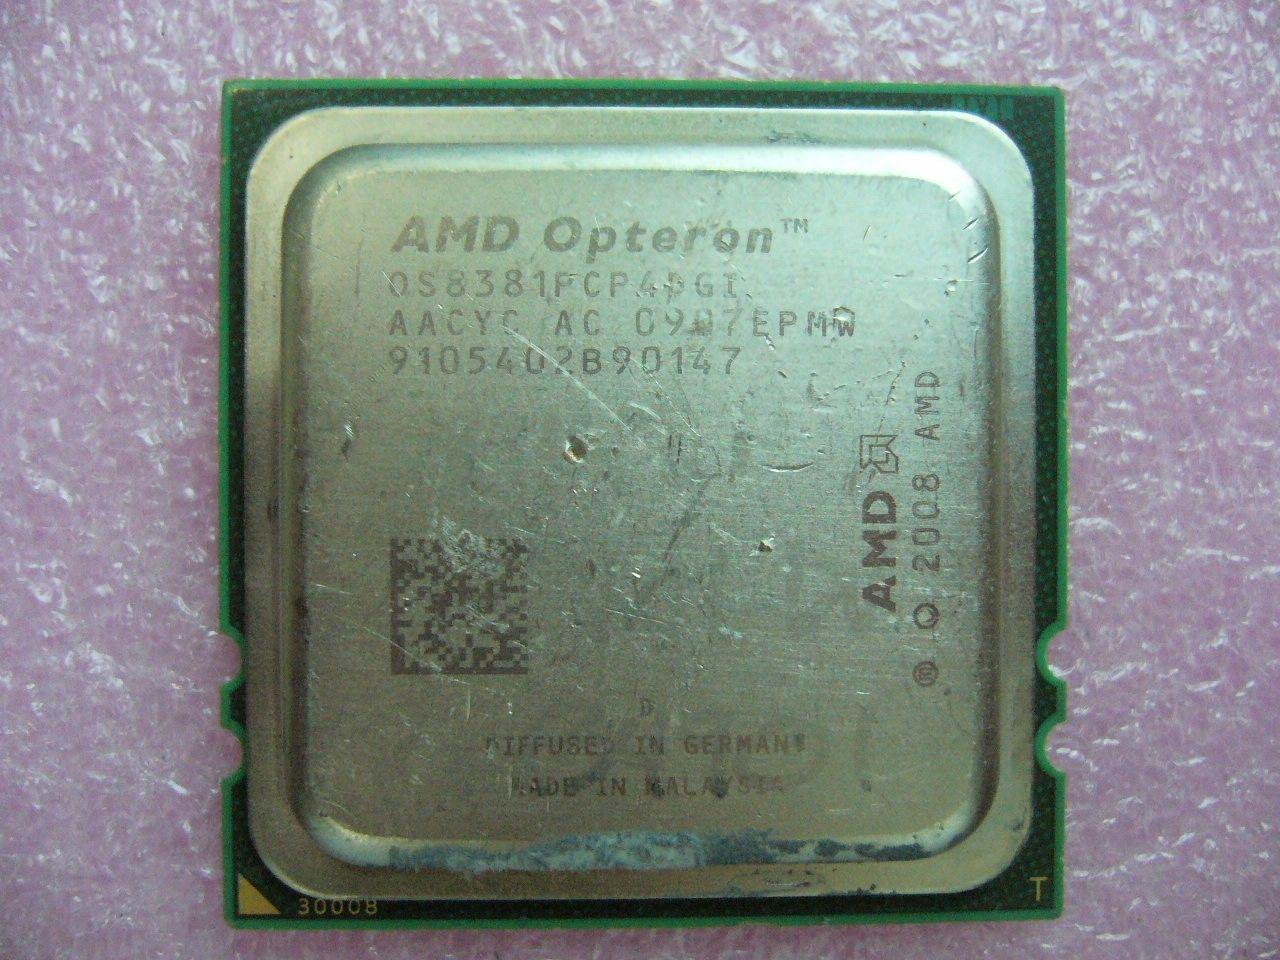 CANTIDAD 1x AMD Opteron 8381 HE 2.5 GHz Quad-Core (OS8381PCP4DGI) CPU Socket F 1207